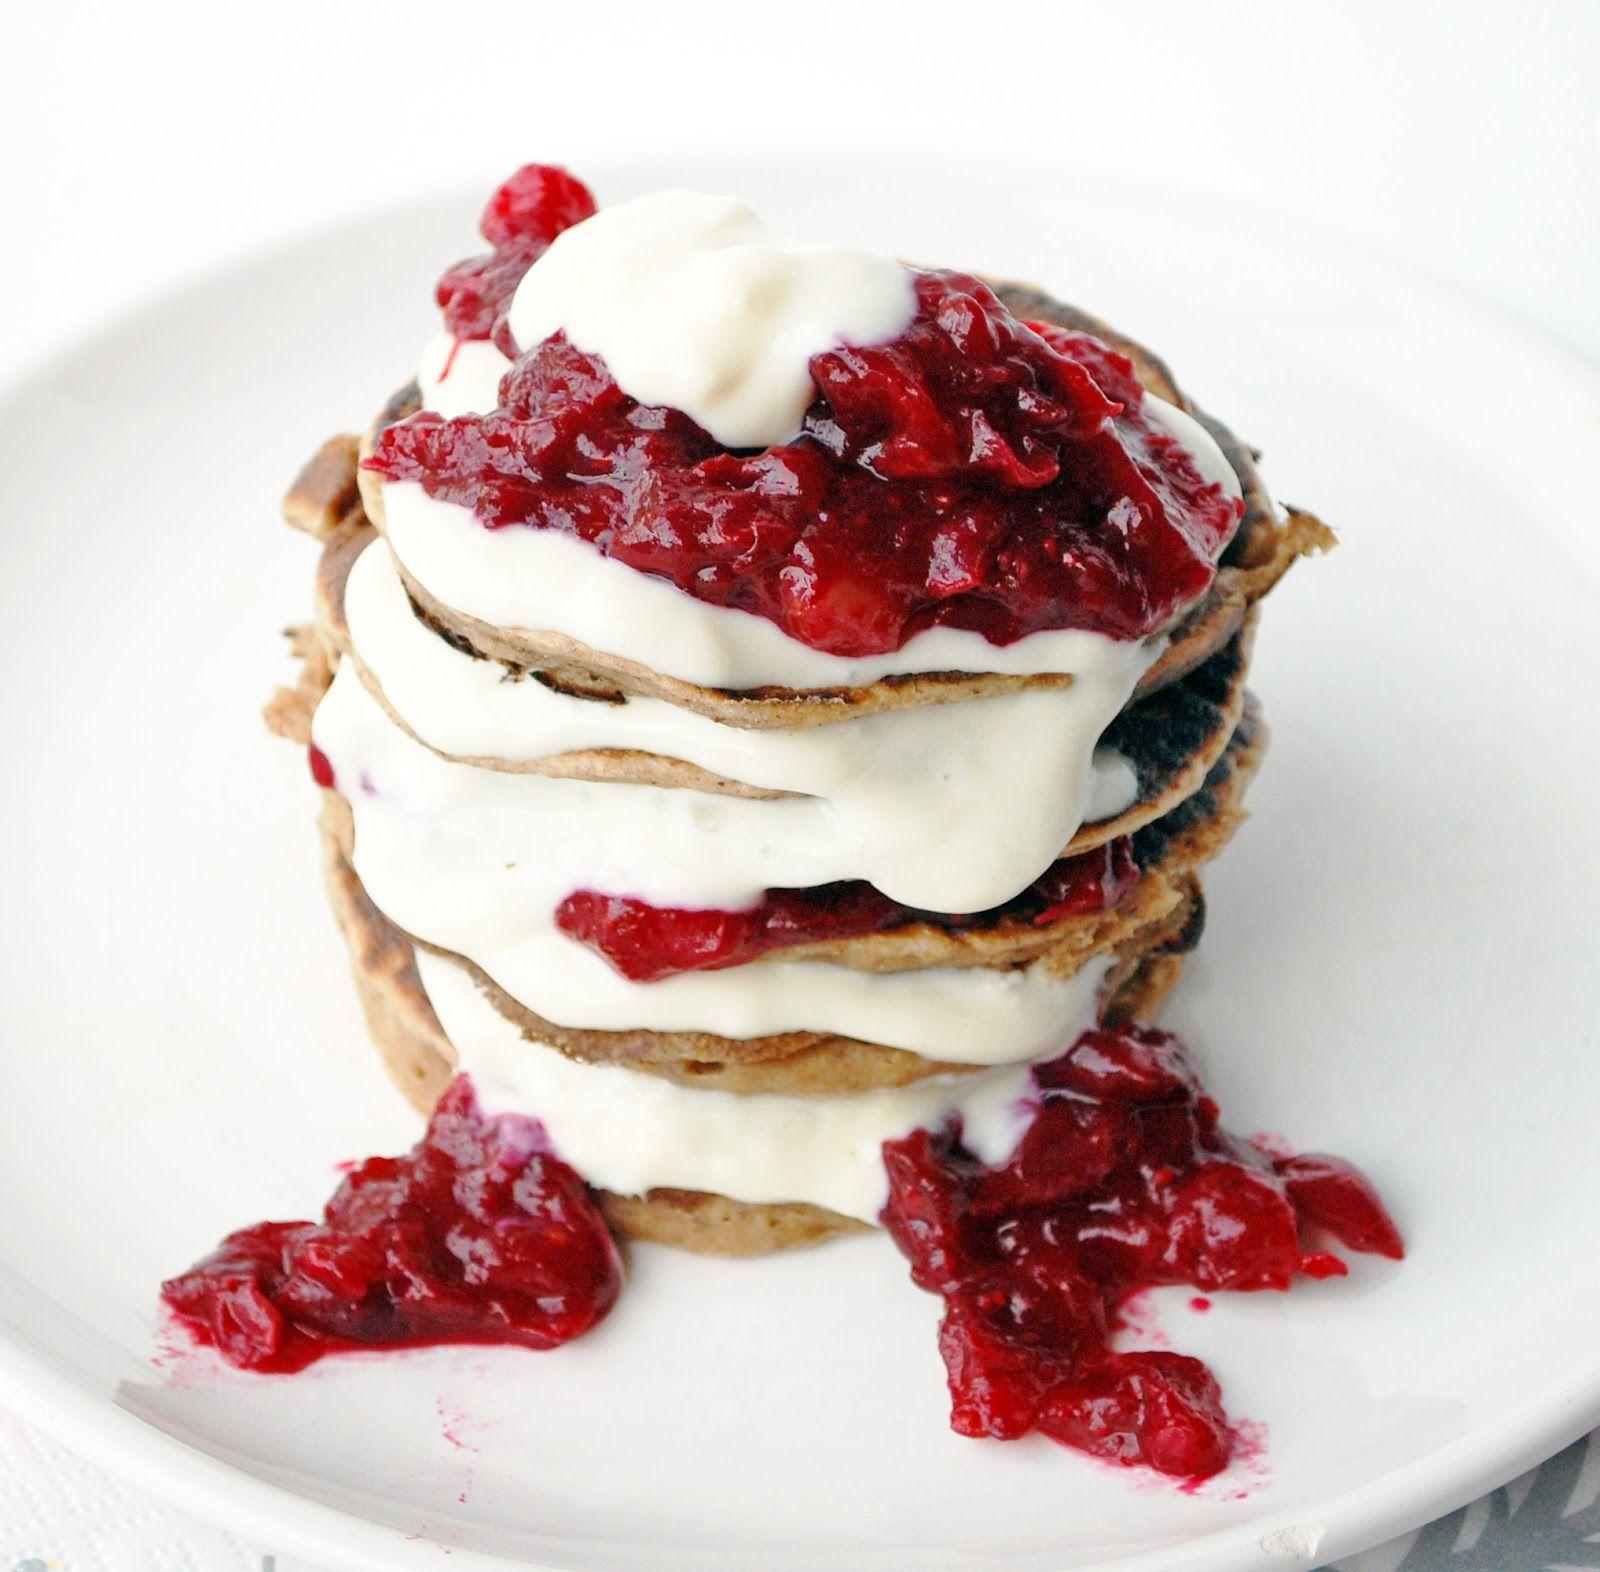 Sweet chestnut pancakes with cranberry compote